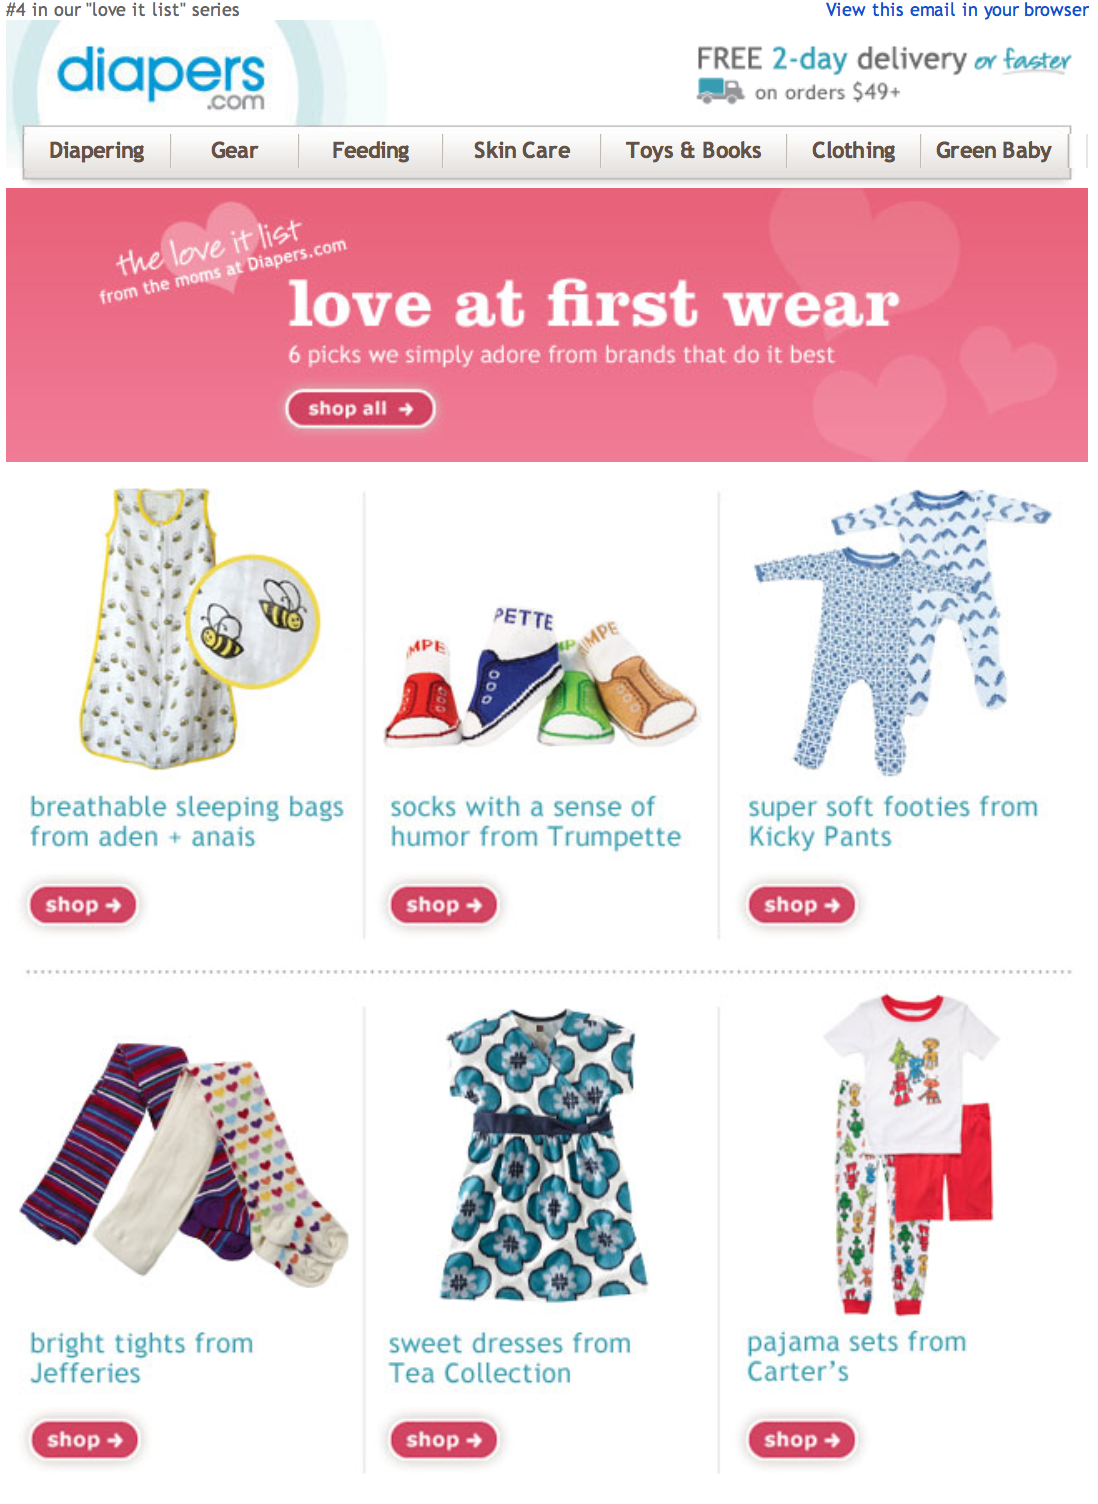 Email: Love at First Wear